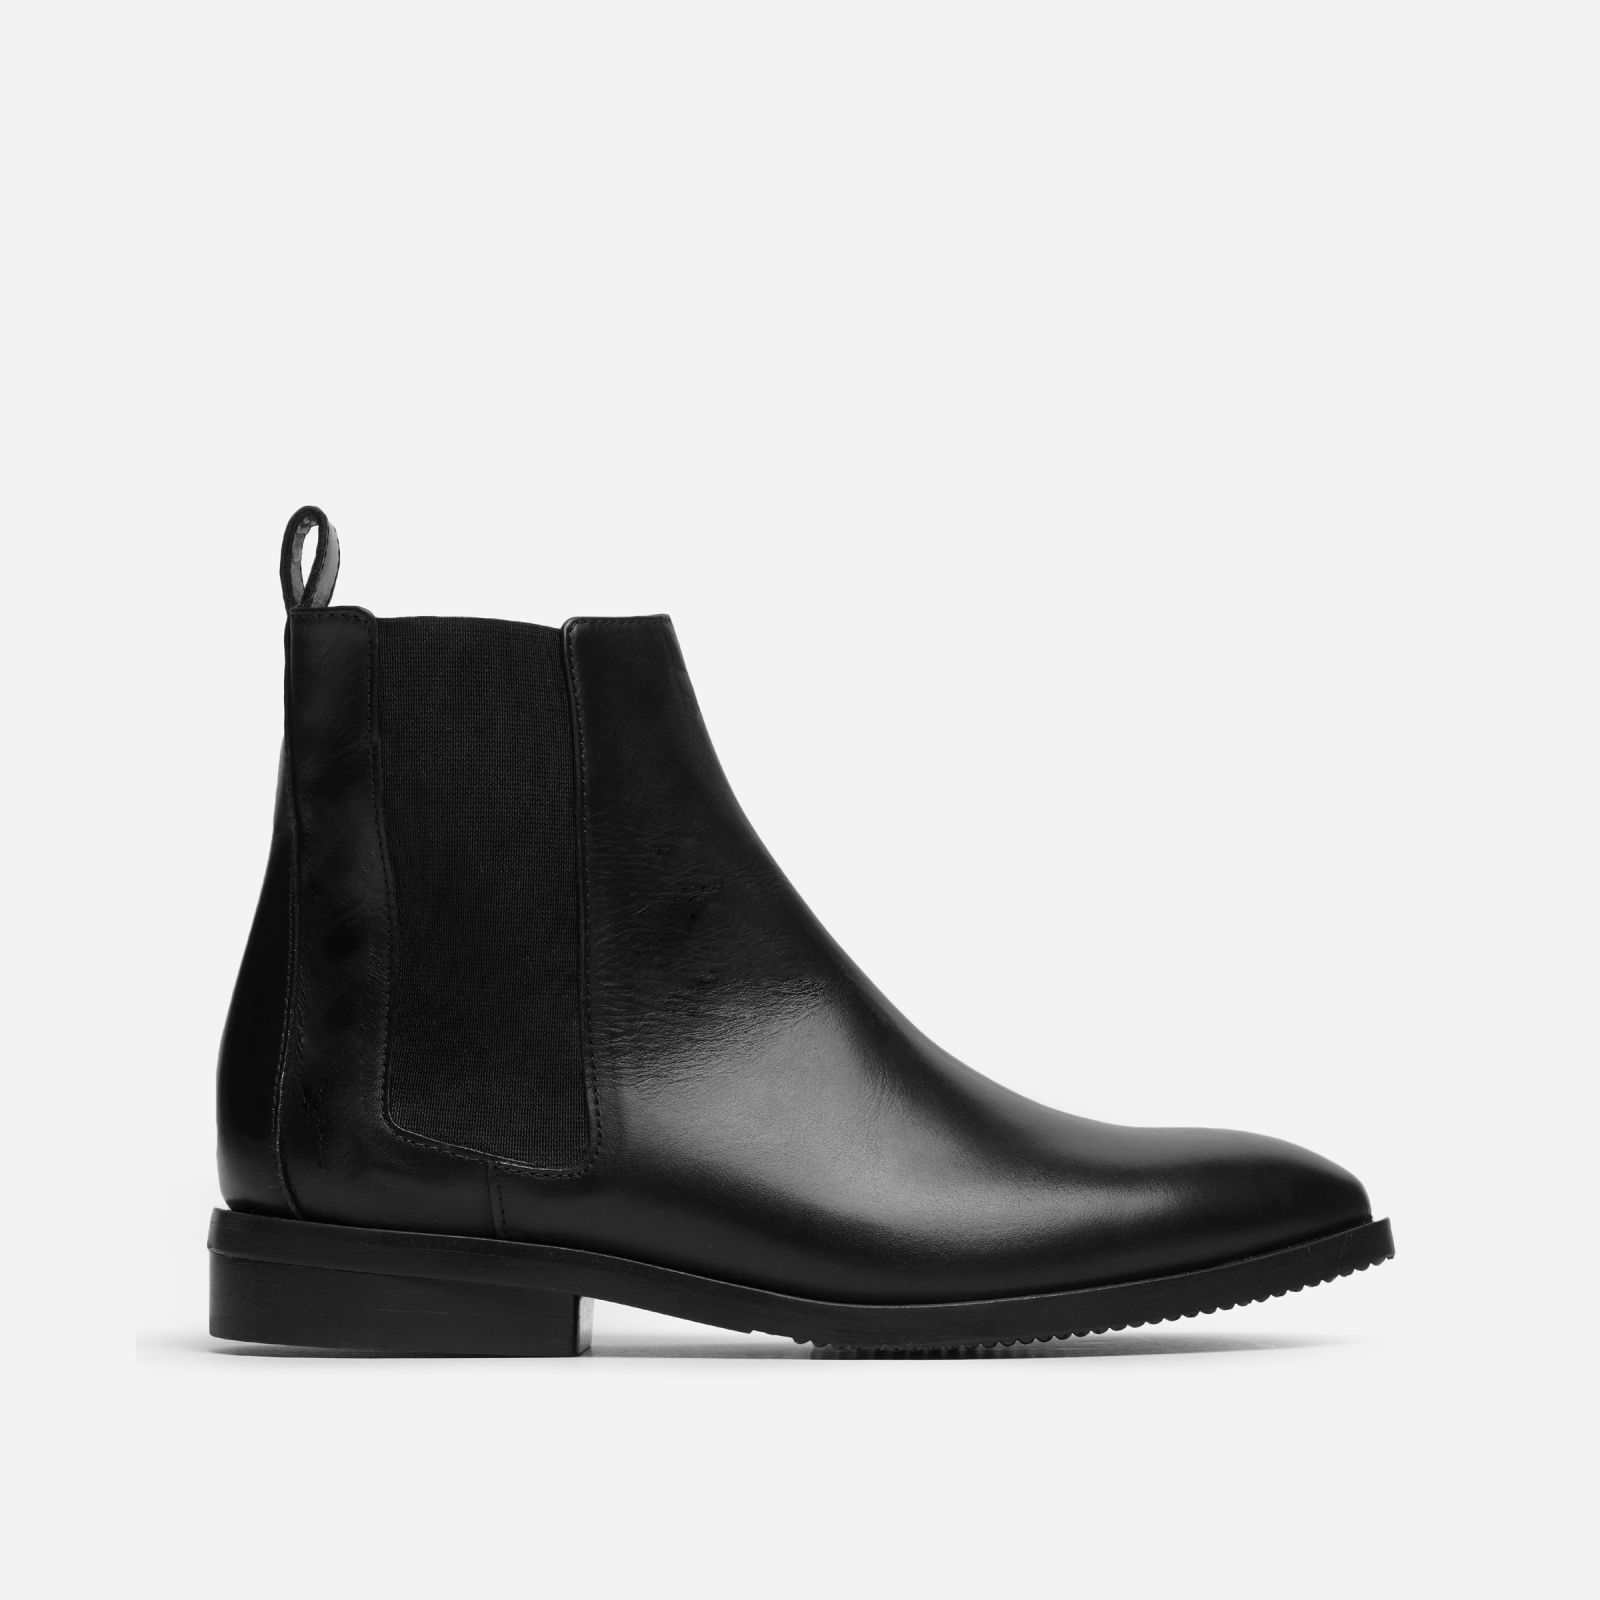 women's chelsea boot by everlane in black, size 10.5